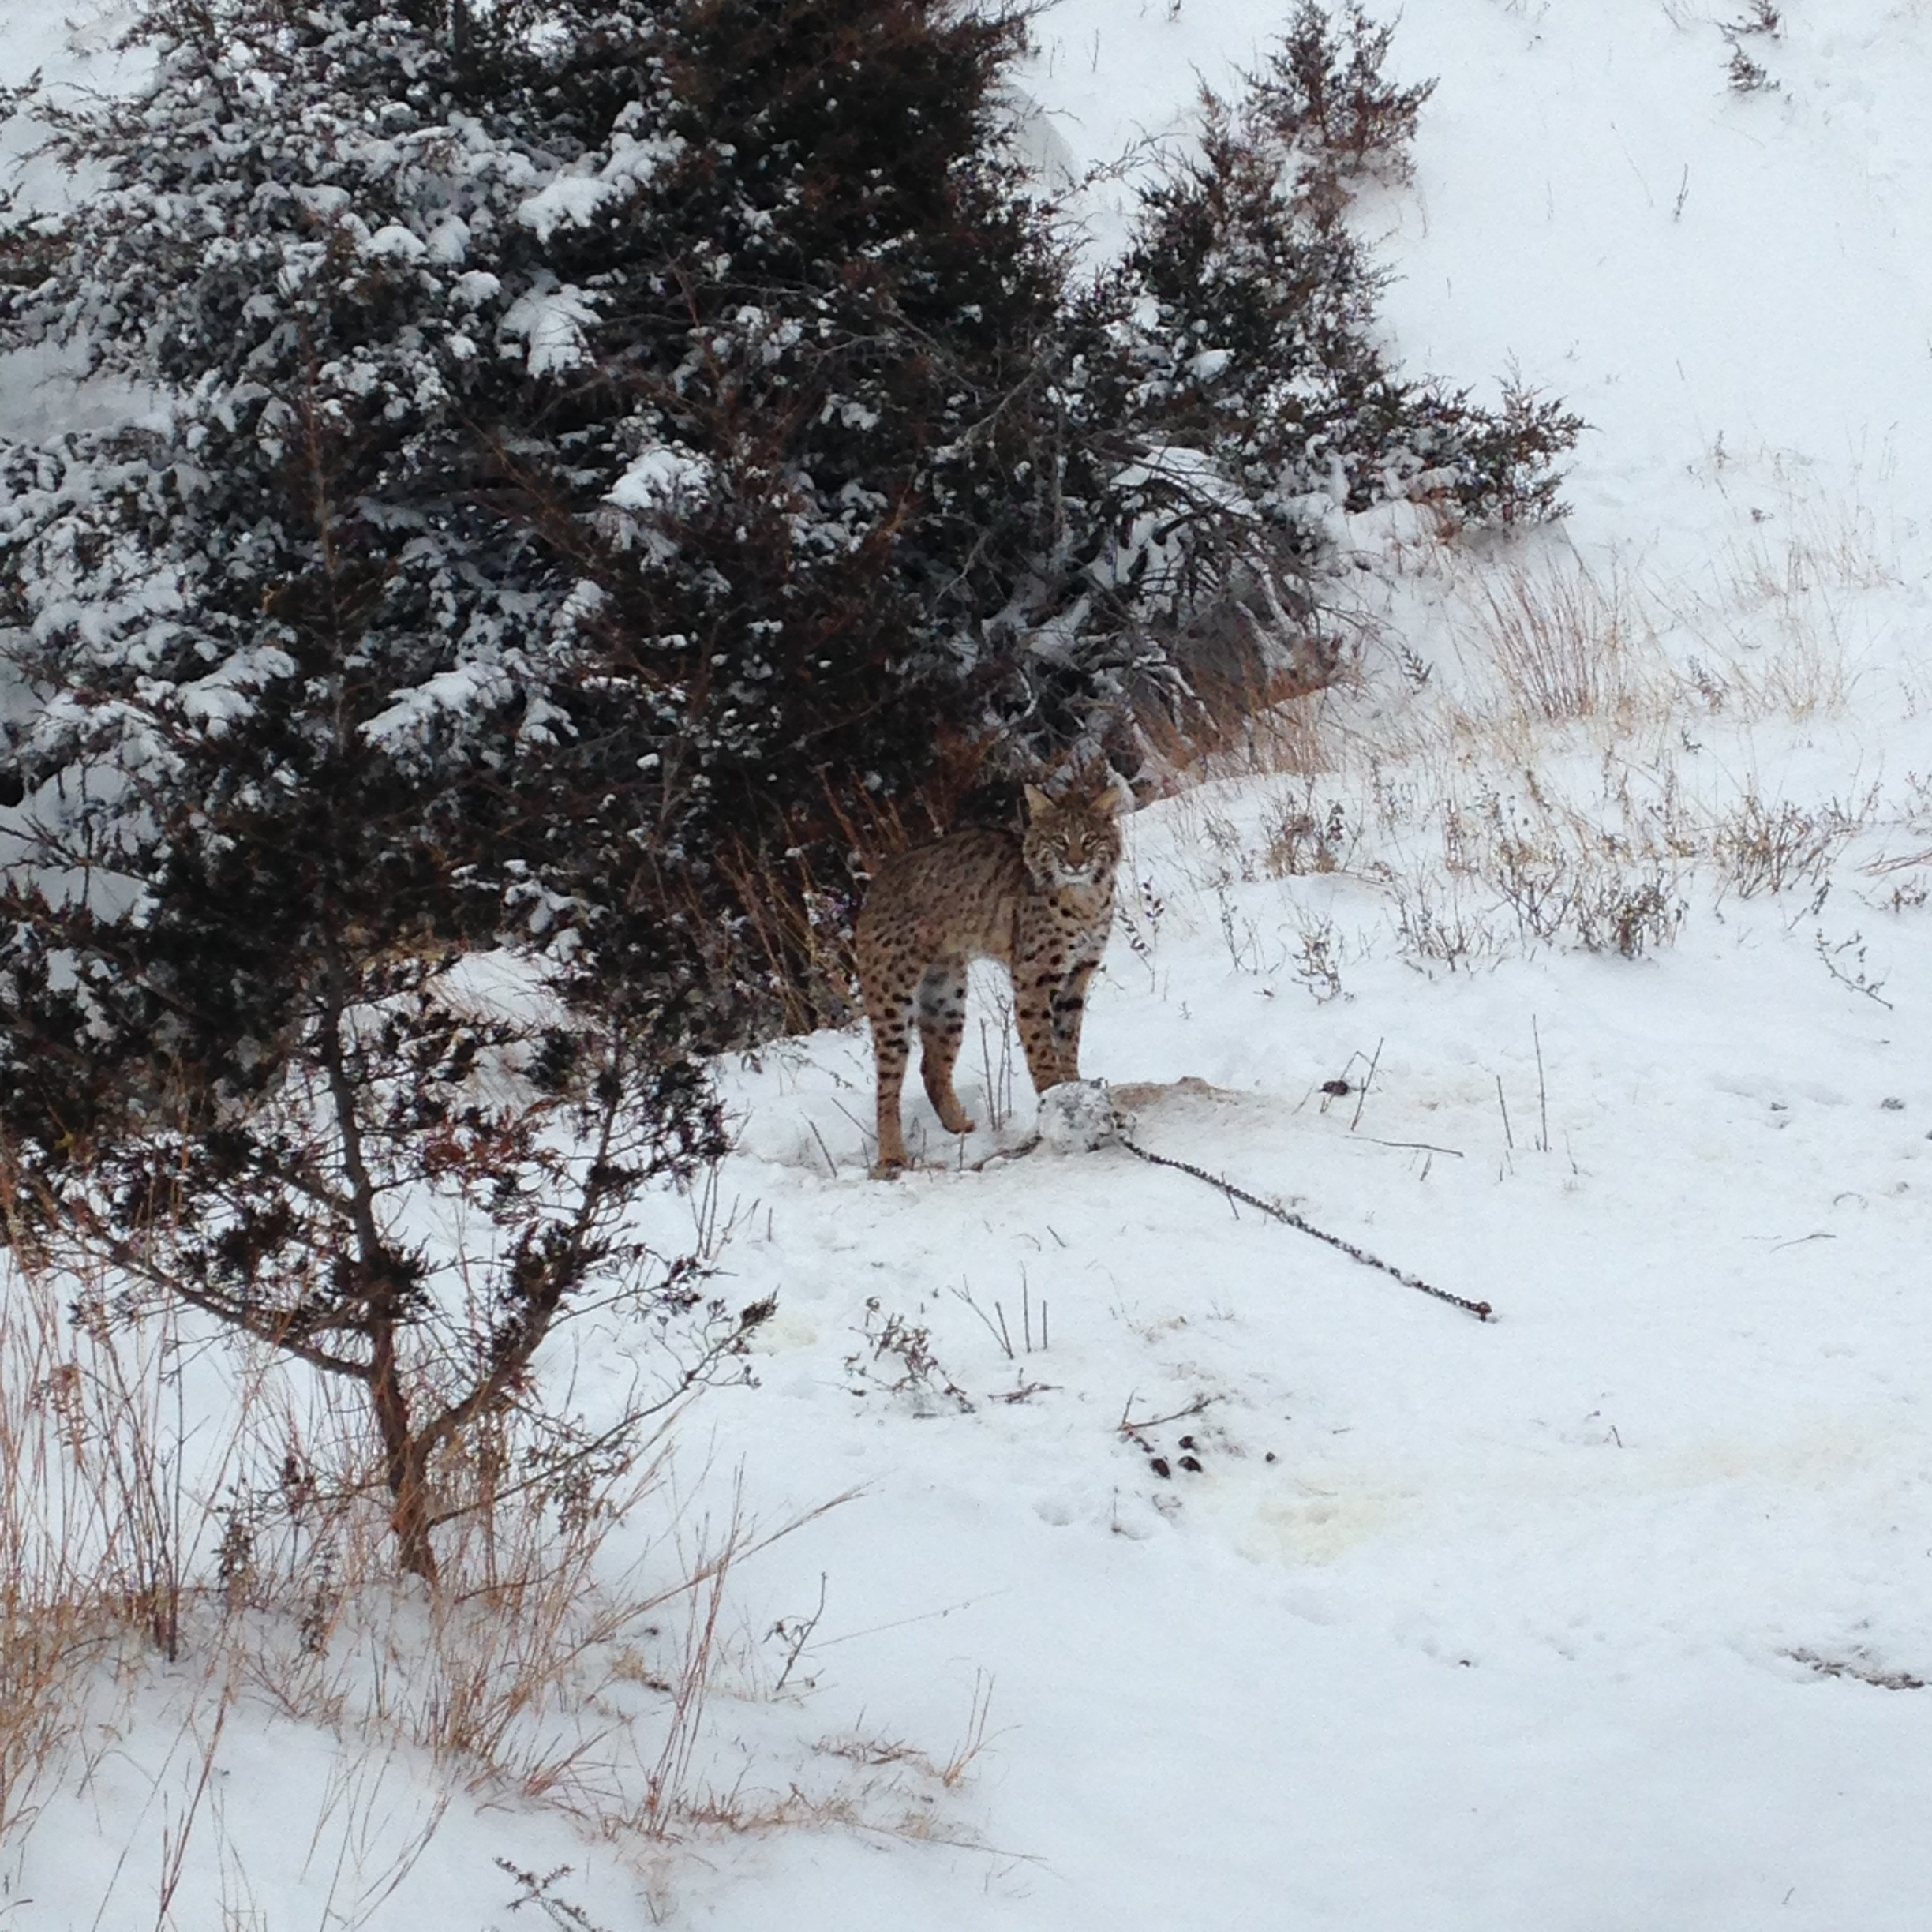 Valley County Spotted Bobcat